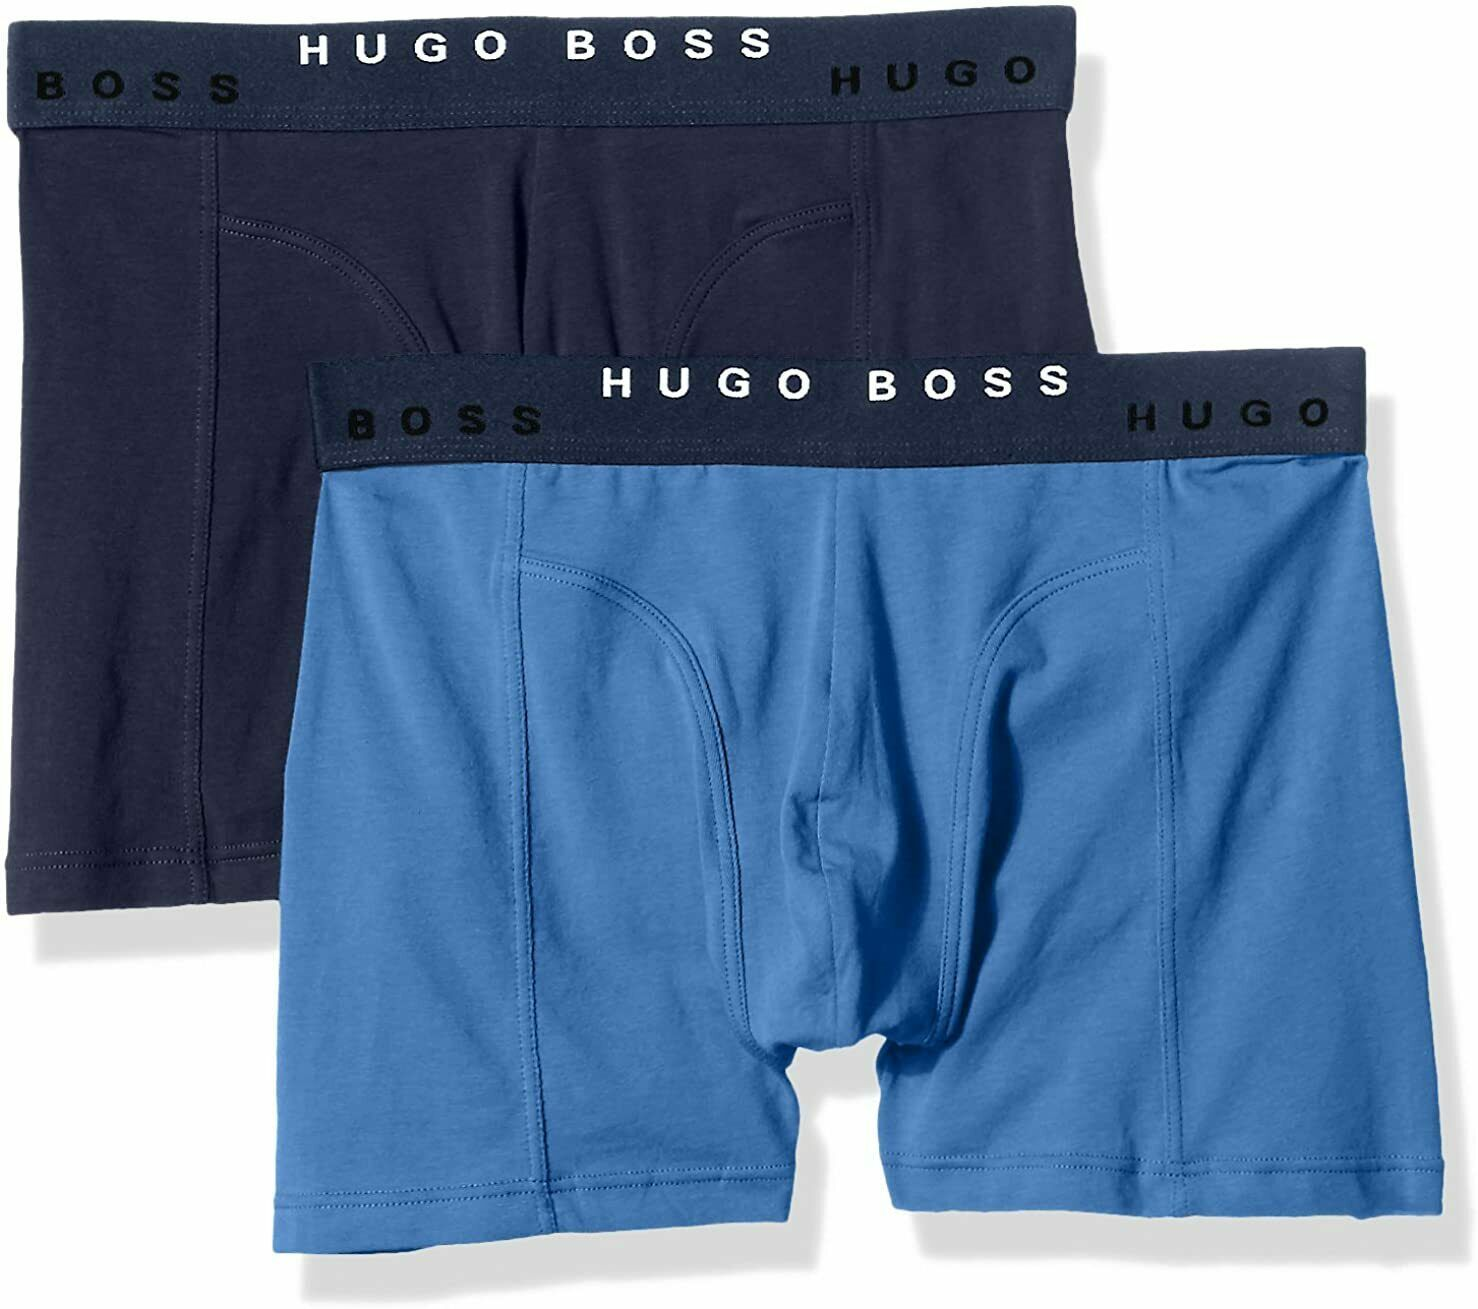 New Hugo Boss Men's Premium Dynamic Cotton Stretch Boxer Briefs